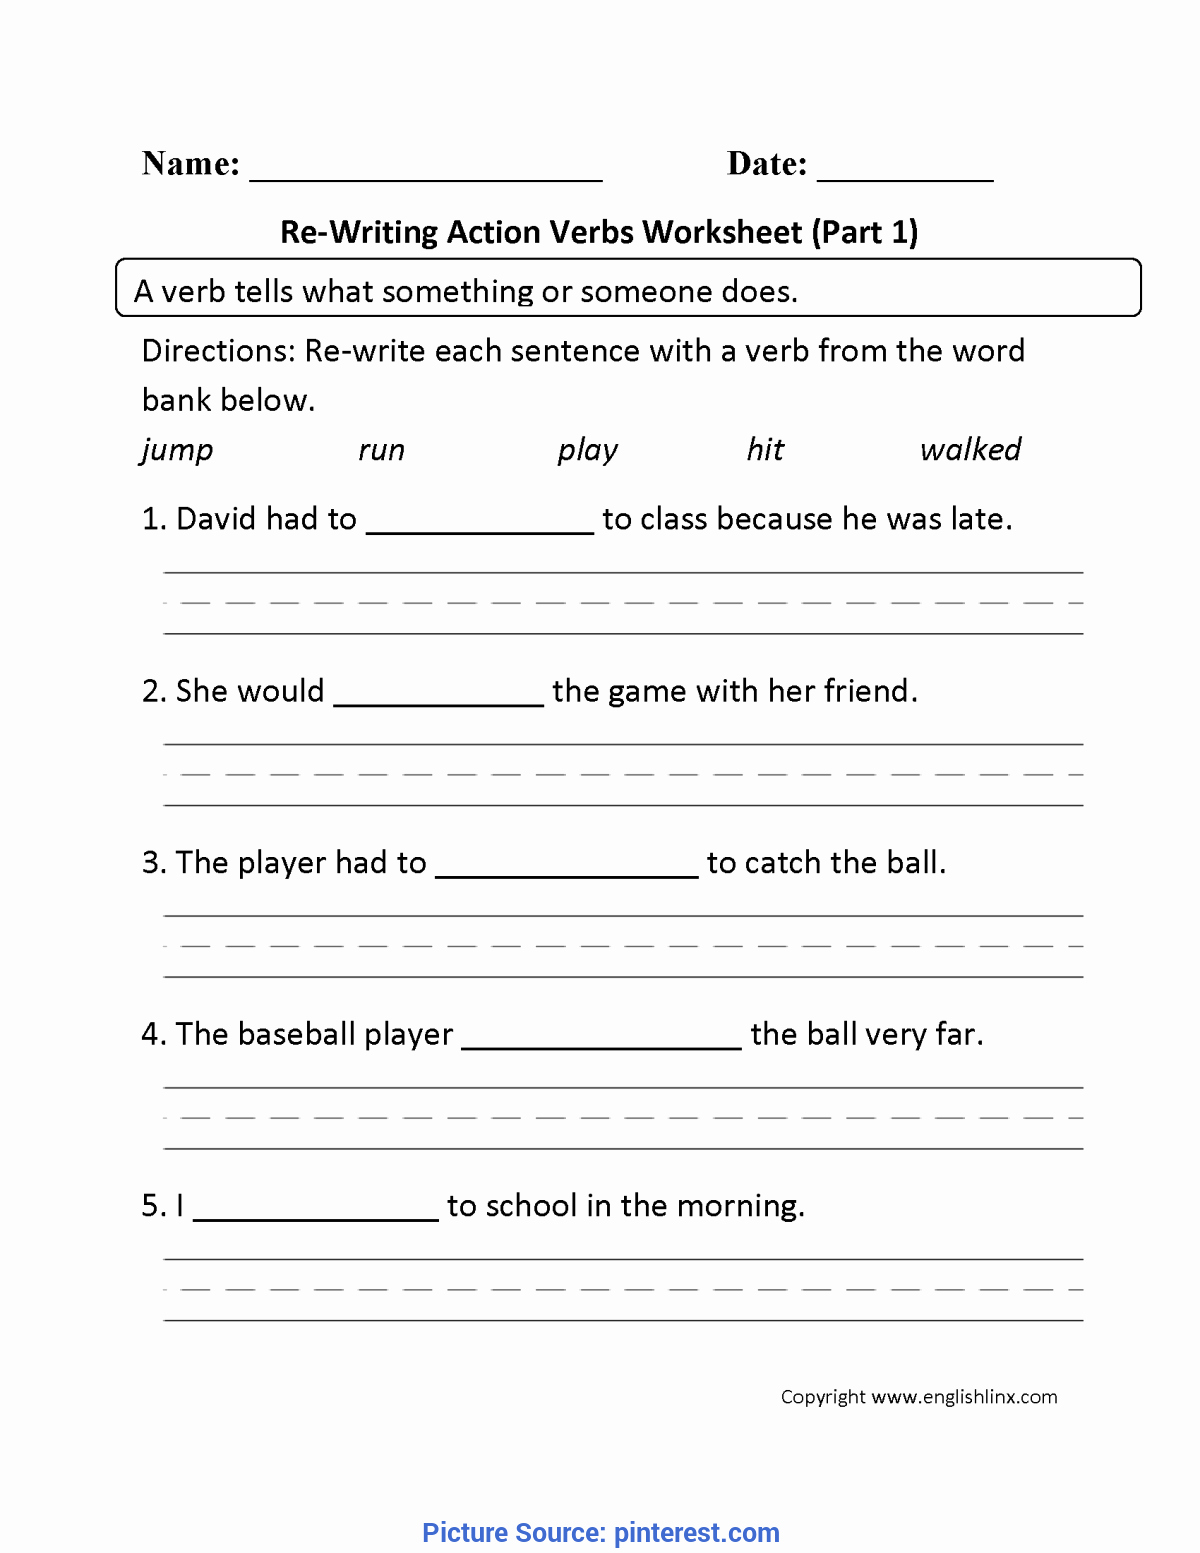 Verbs Worksheets First Grade Inspirational Great Lesson Plan Verbs Grade 1 Re Writing Action Verbs